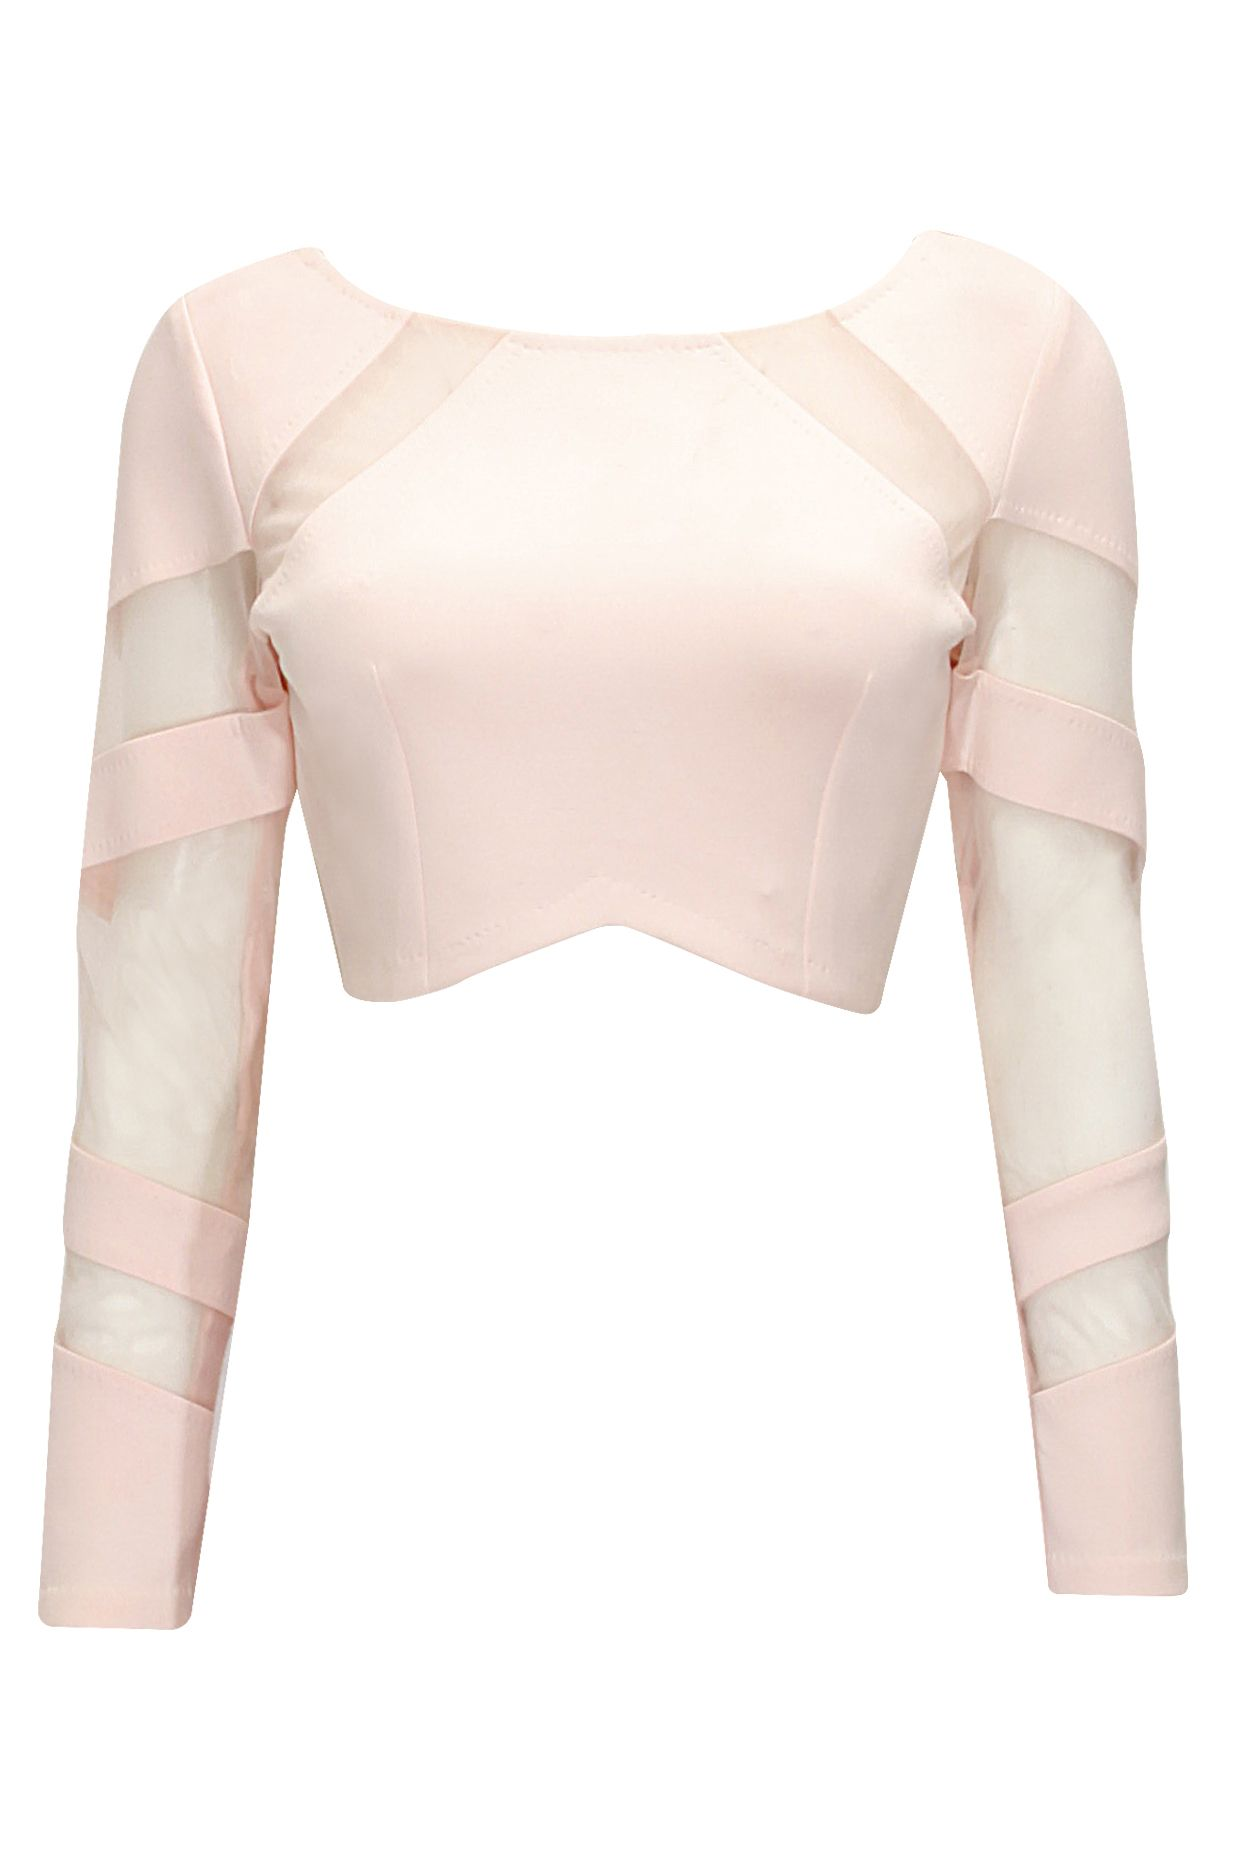 1879d9652 Blush mesh detail crop top available only at pernia pop up shop also rh  pinterest